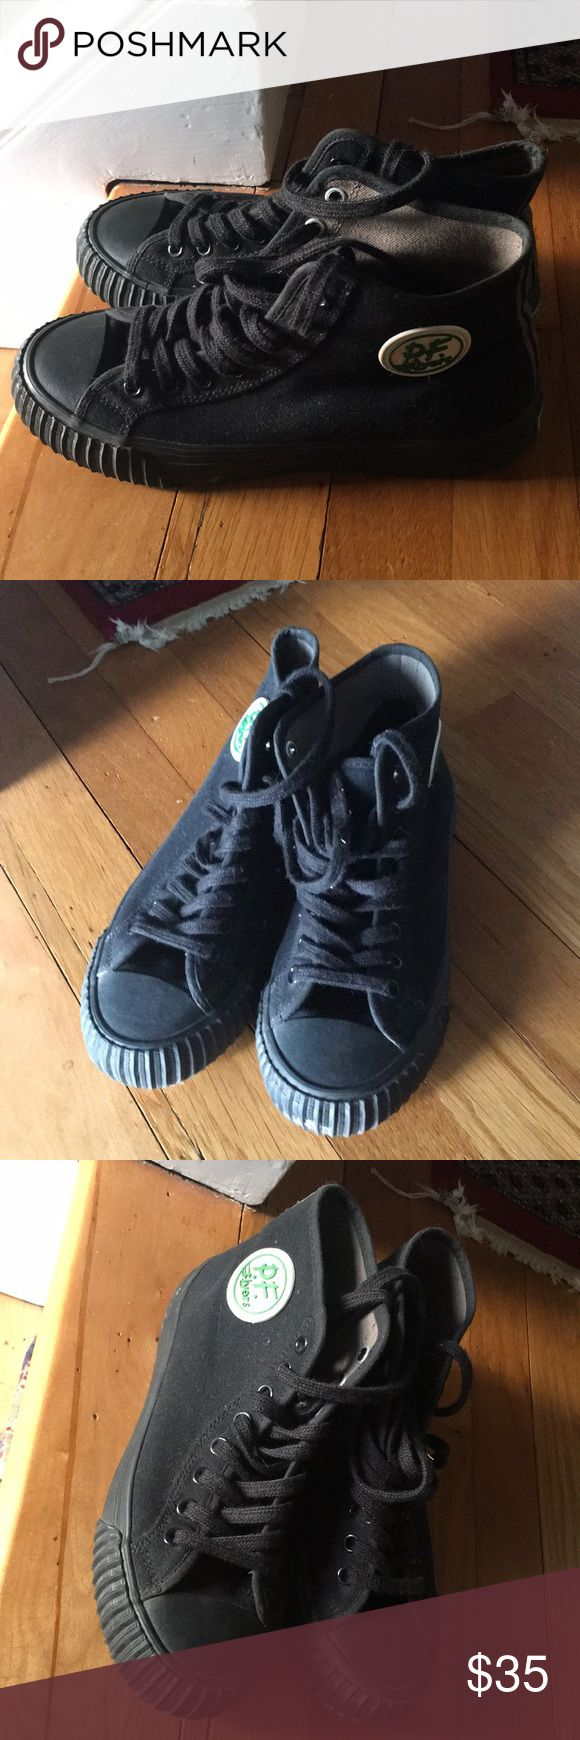 High Top PF Flyers Black High Top P.F. Flyers - Black. Women's 7.5 (Men's 6). Good neutral comfy sneaker. Worn only a few times. New Balance Shoes Sneakers